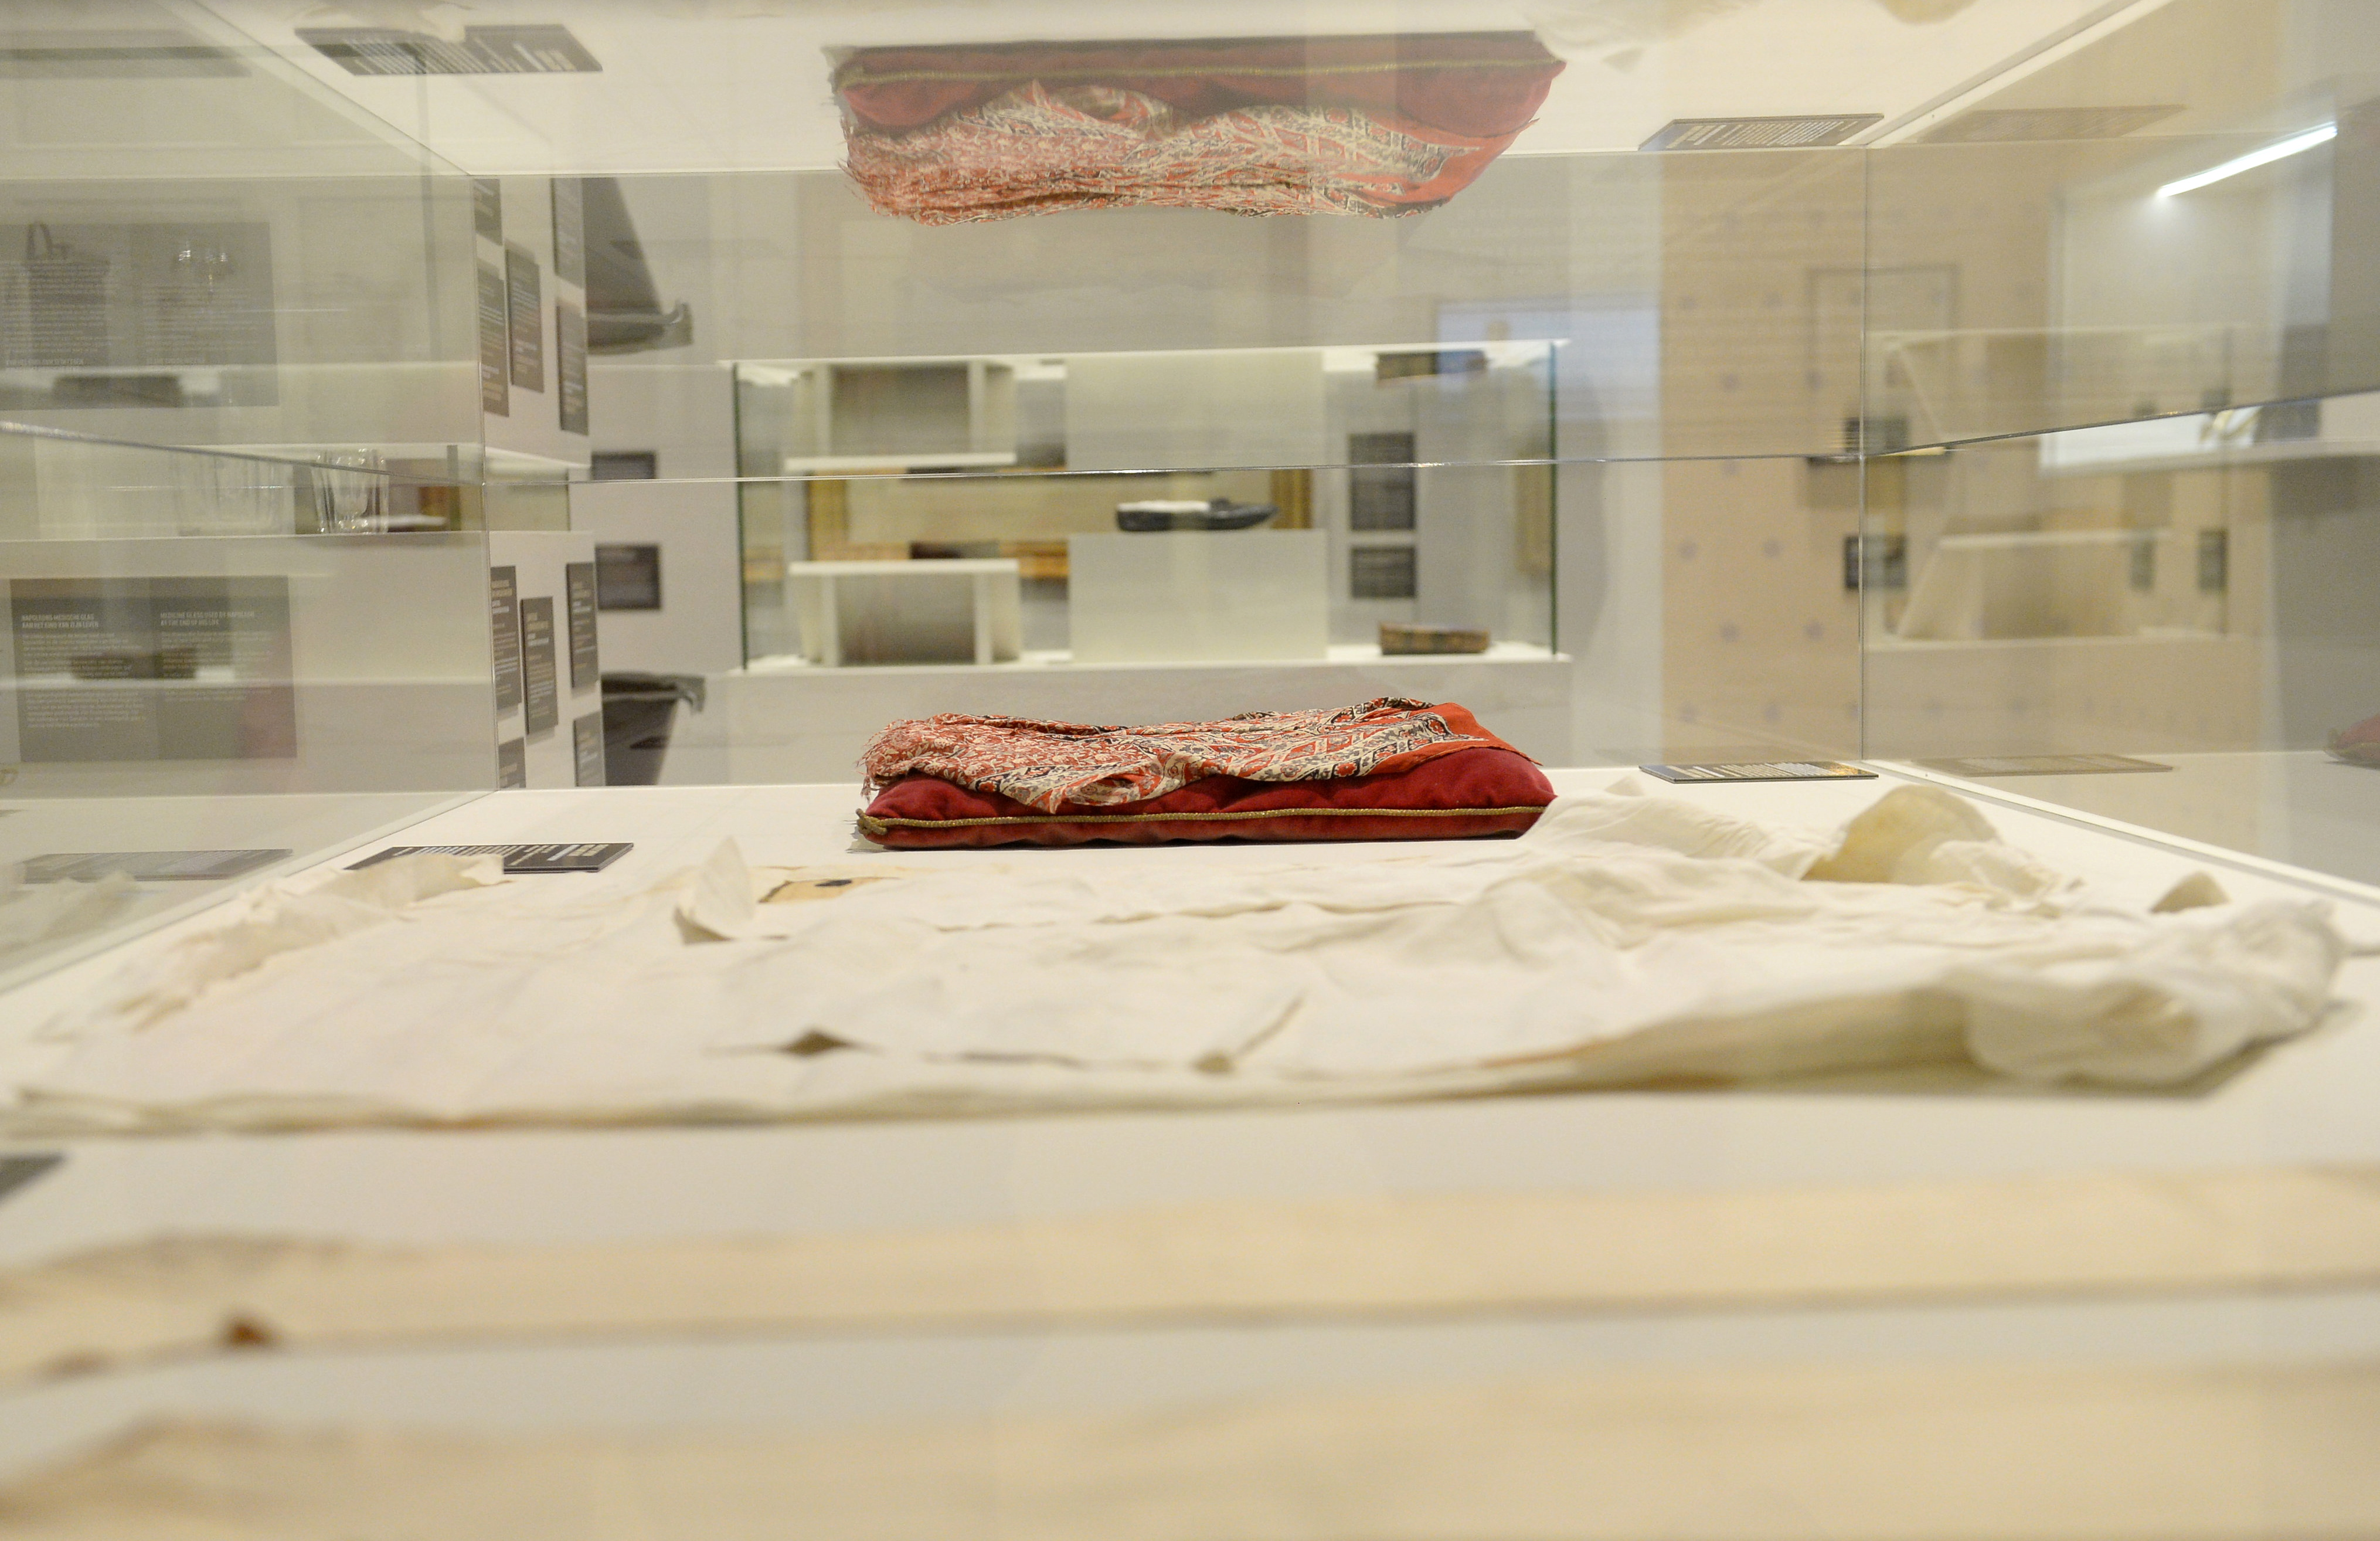 A Madras and the shirt worn by Napoleon on St Helena are displayed at Waterloo Battlefield Museum in Braine-L'Alleud, before being put on auction by Bonhams for the bicentenary of Napoleon's death, Belgium, May 11, 2021. REUTERS/Johanna Geron